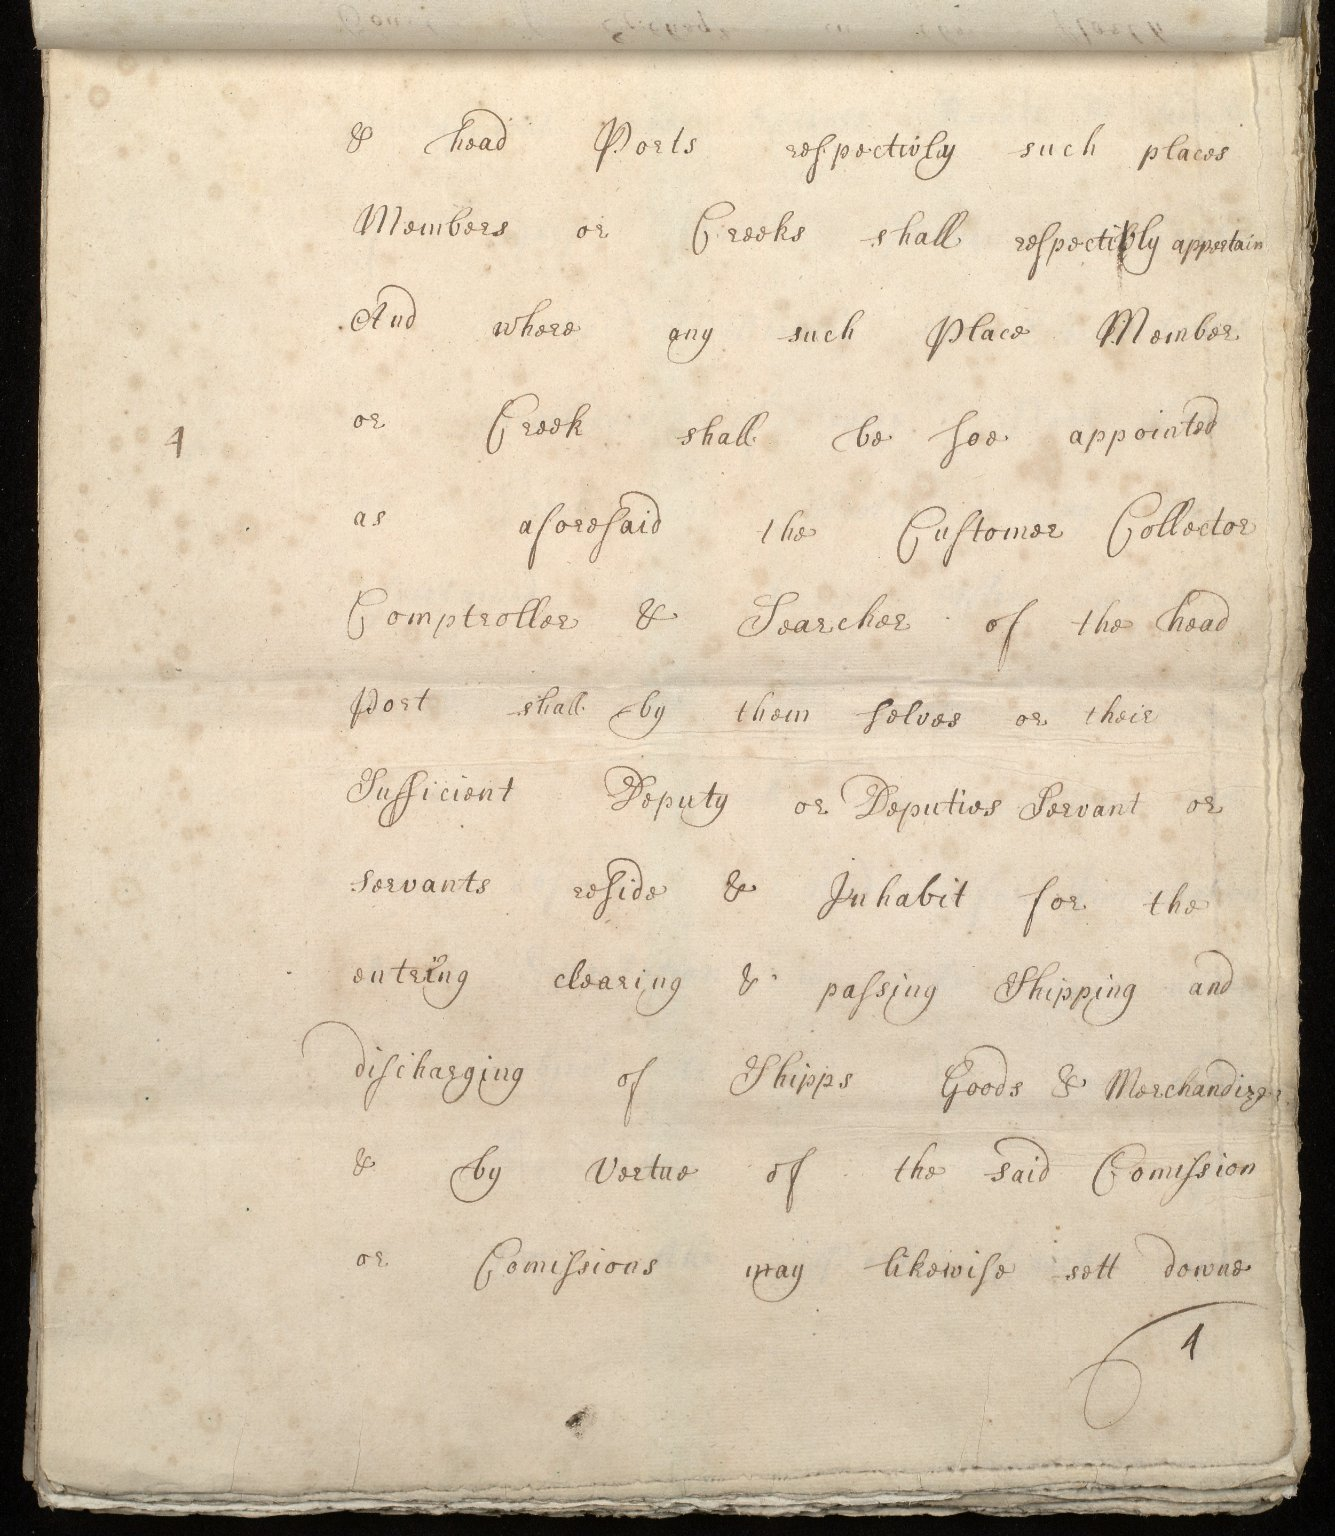 [Commission by Queen Anne to John Adair and others to appoint the town of Borrowstounness (Bo'ness) to be a port and to fix the bounds thereof] [04 of 39]